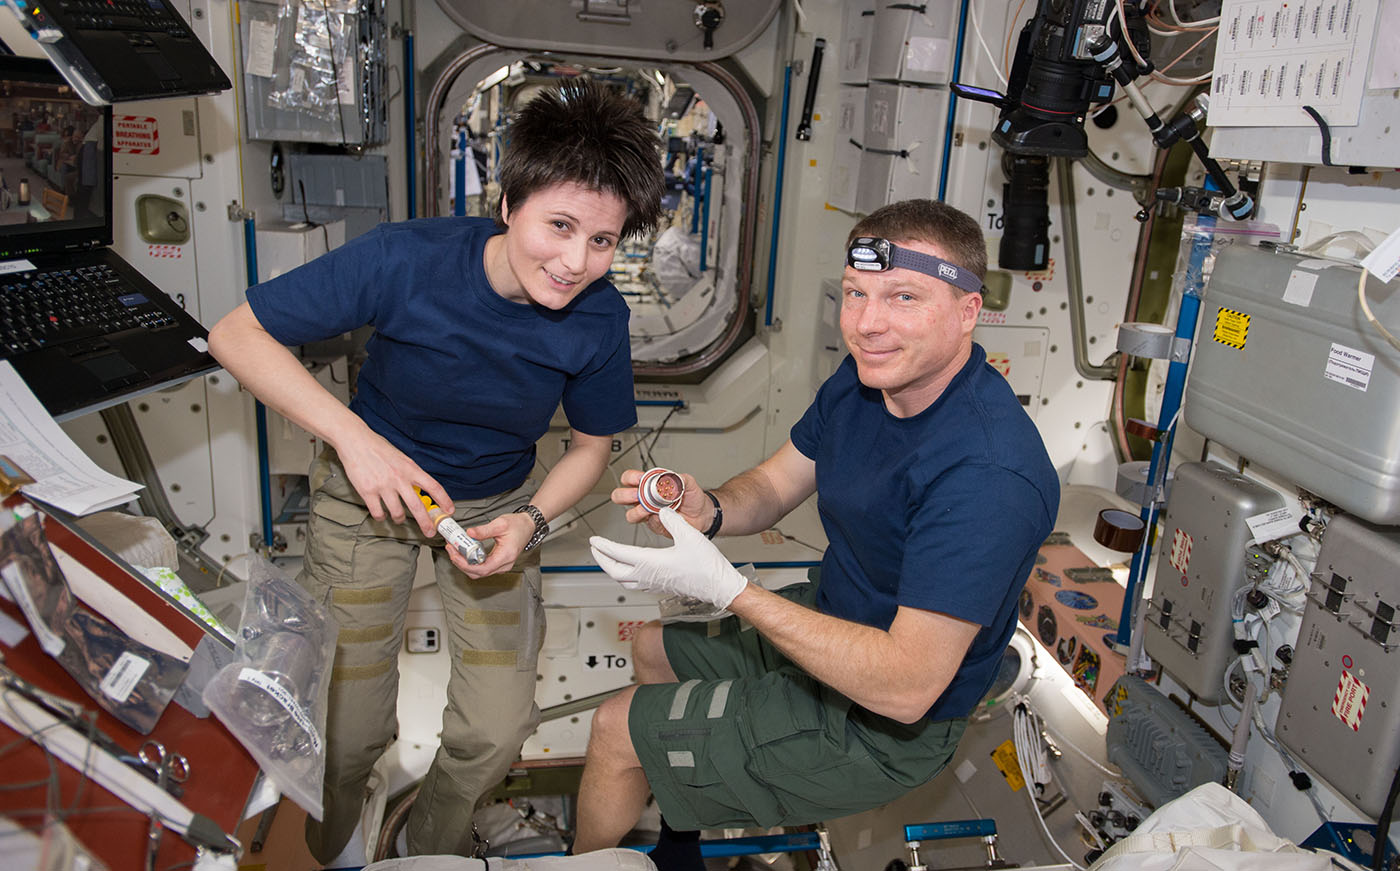 NASA accepting applications for the position of 'astronaut'